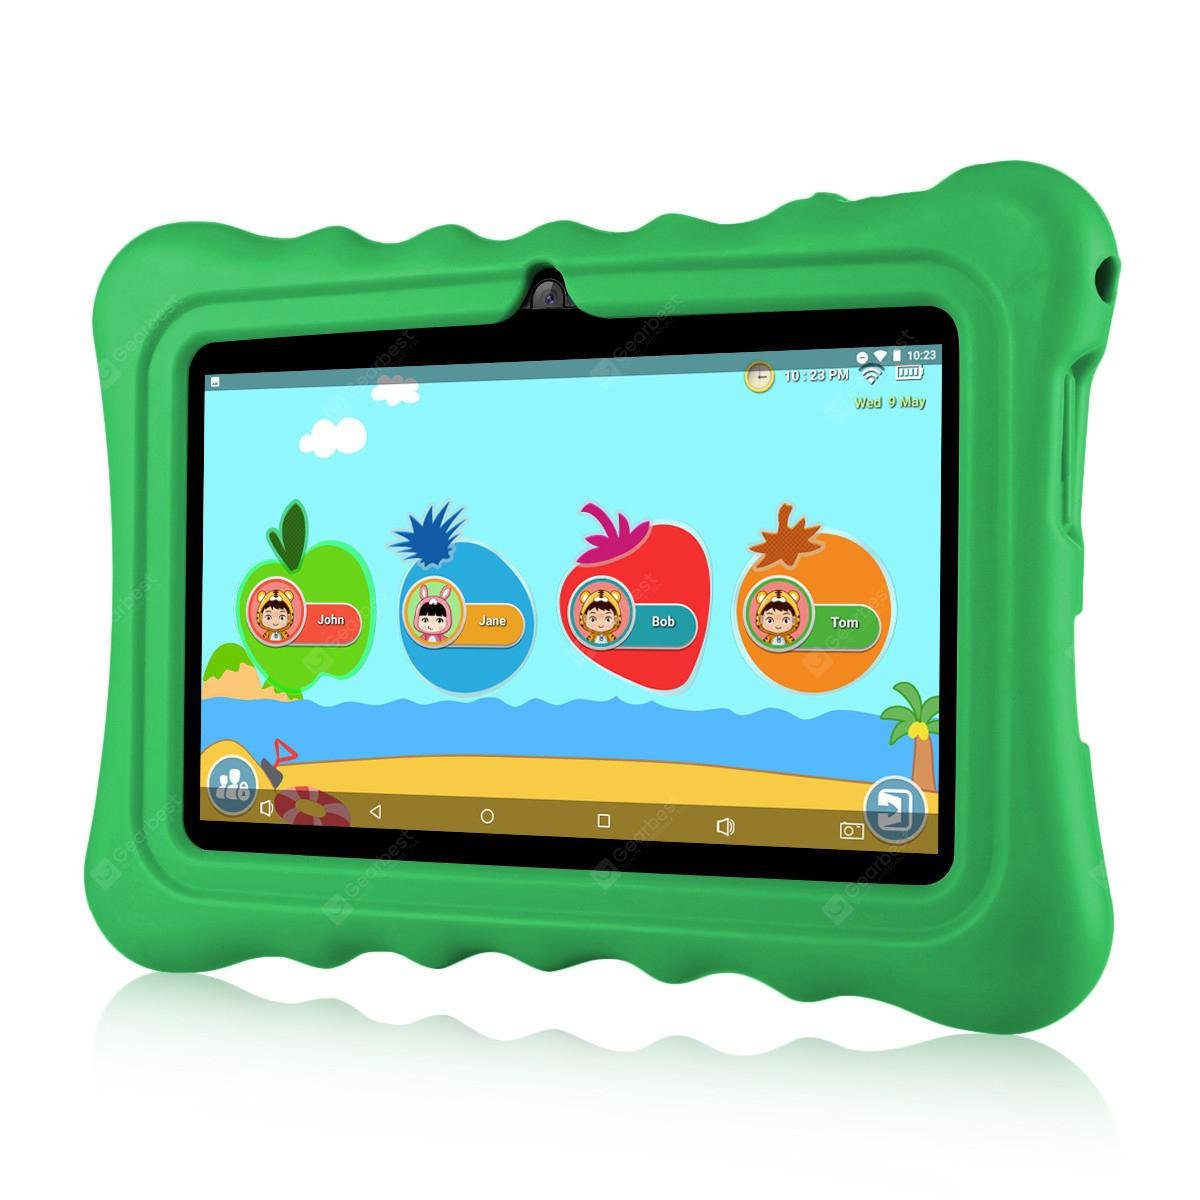 """Ainol Q88 Kids Android 7.1 OS Tablet 7"""" Display 1G RAM 8 GB ROM Light Weight Portable Kid-Proof Shock-Proof Silicone Case Kickstand Available With iWawa For Kids Education Entertainment---Green"""